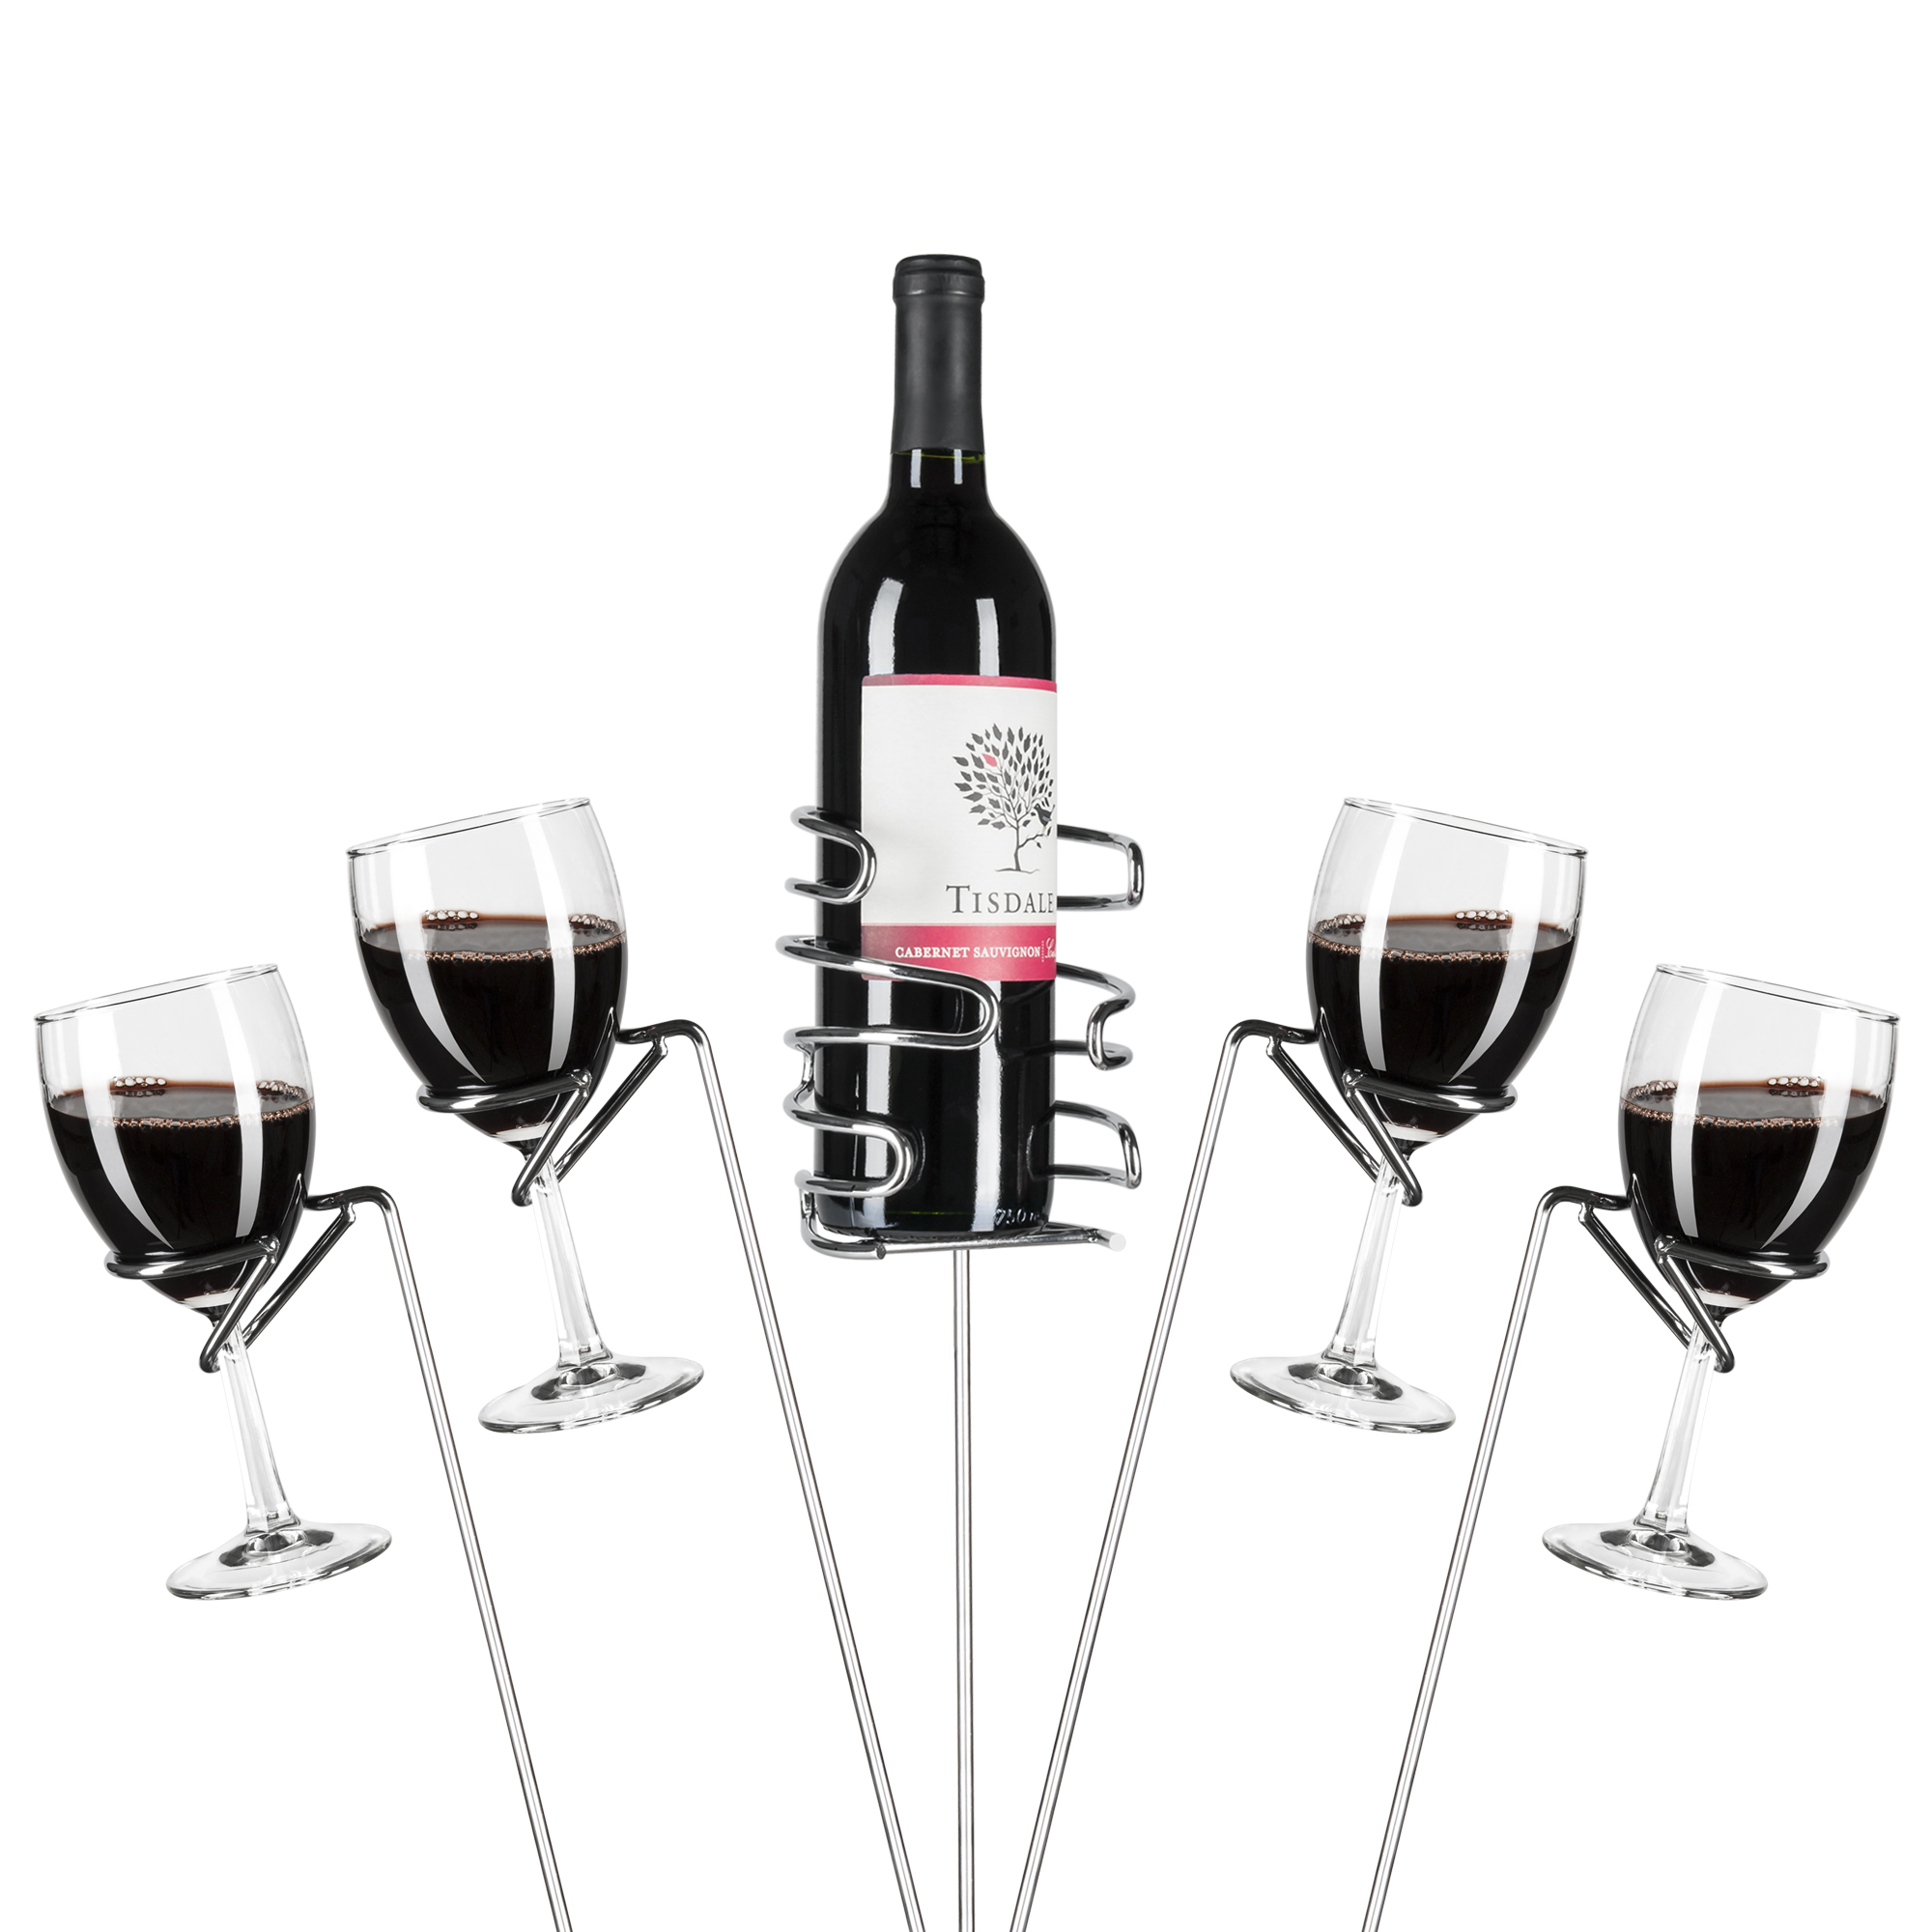 Best Choice Products 5-Piece Reinforced Stainless Steel Wine Glass Rack Holder Stakes Set for Bottles, Candles, Hands-Free Outdoor Picnics, Travel - Silver